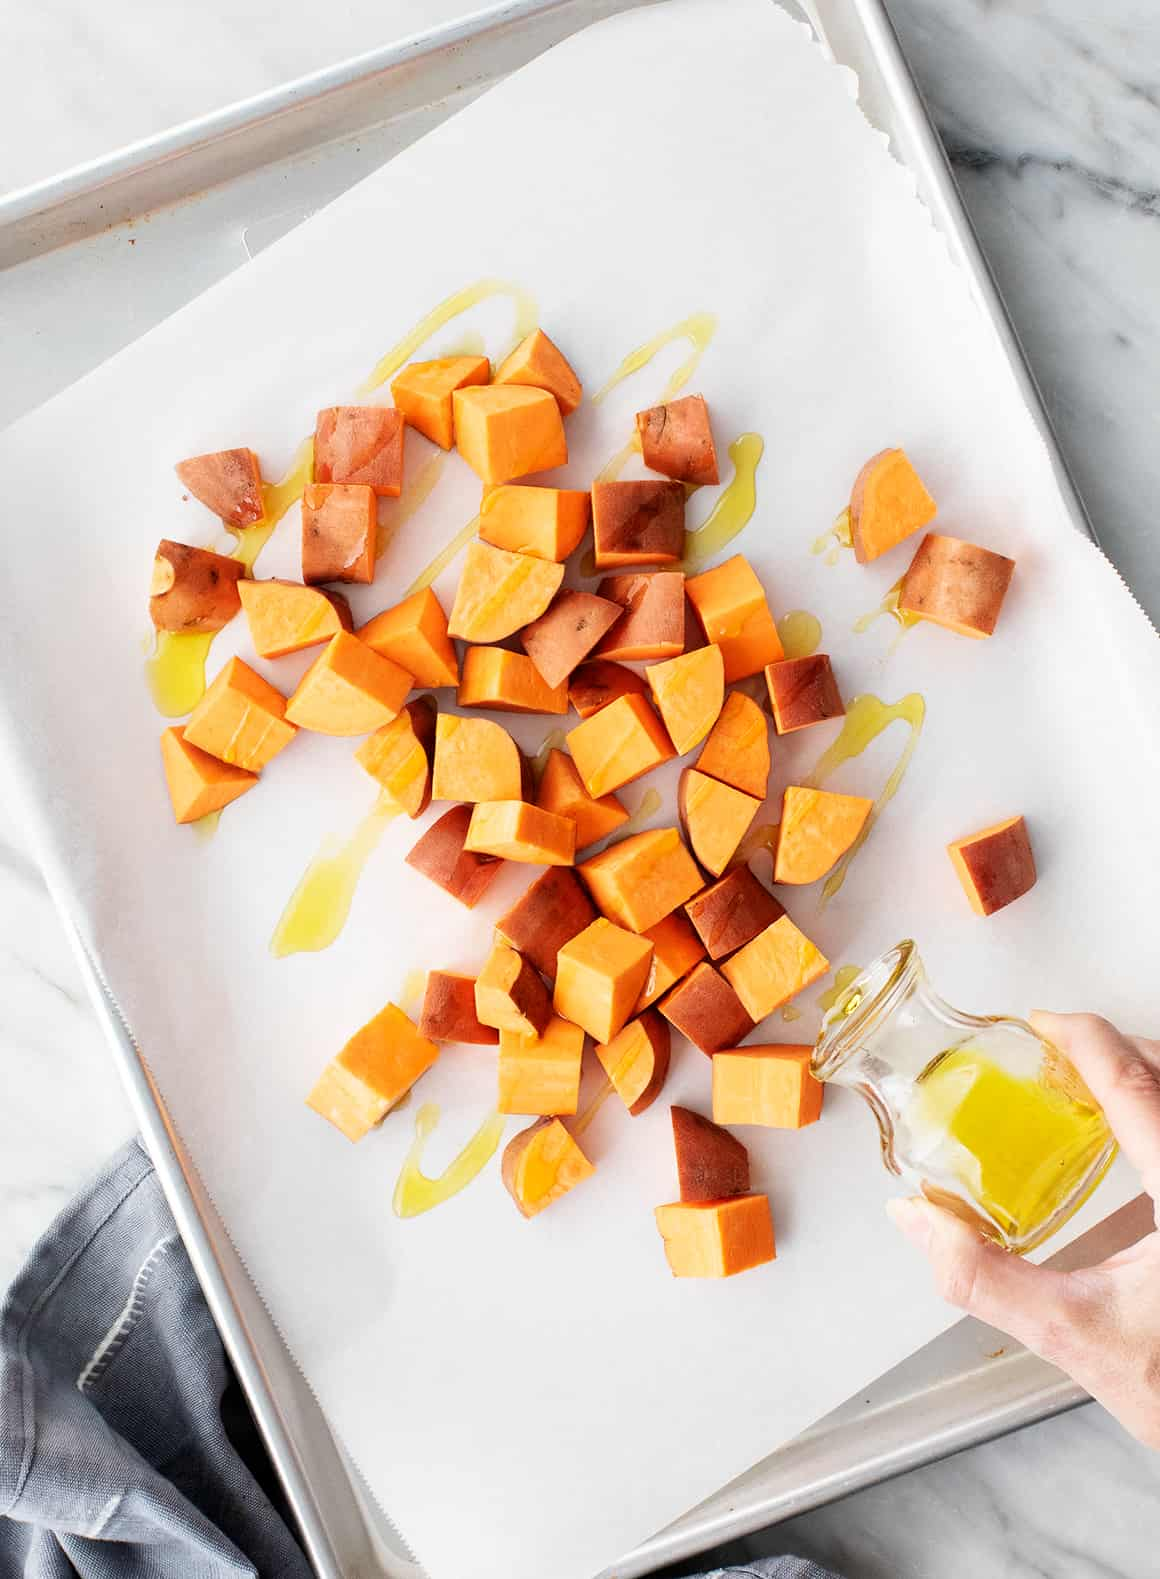 Sweet potato cubes on a baking sheet with olive oil